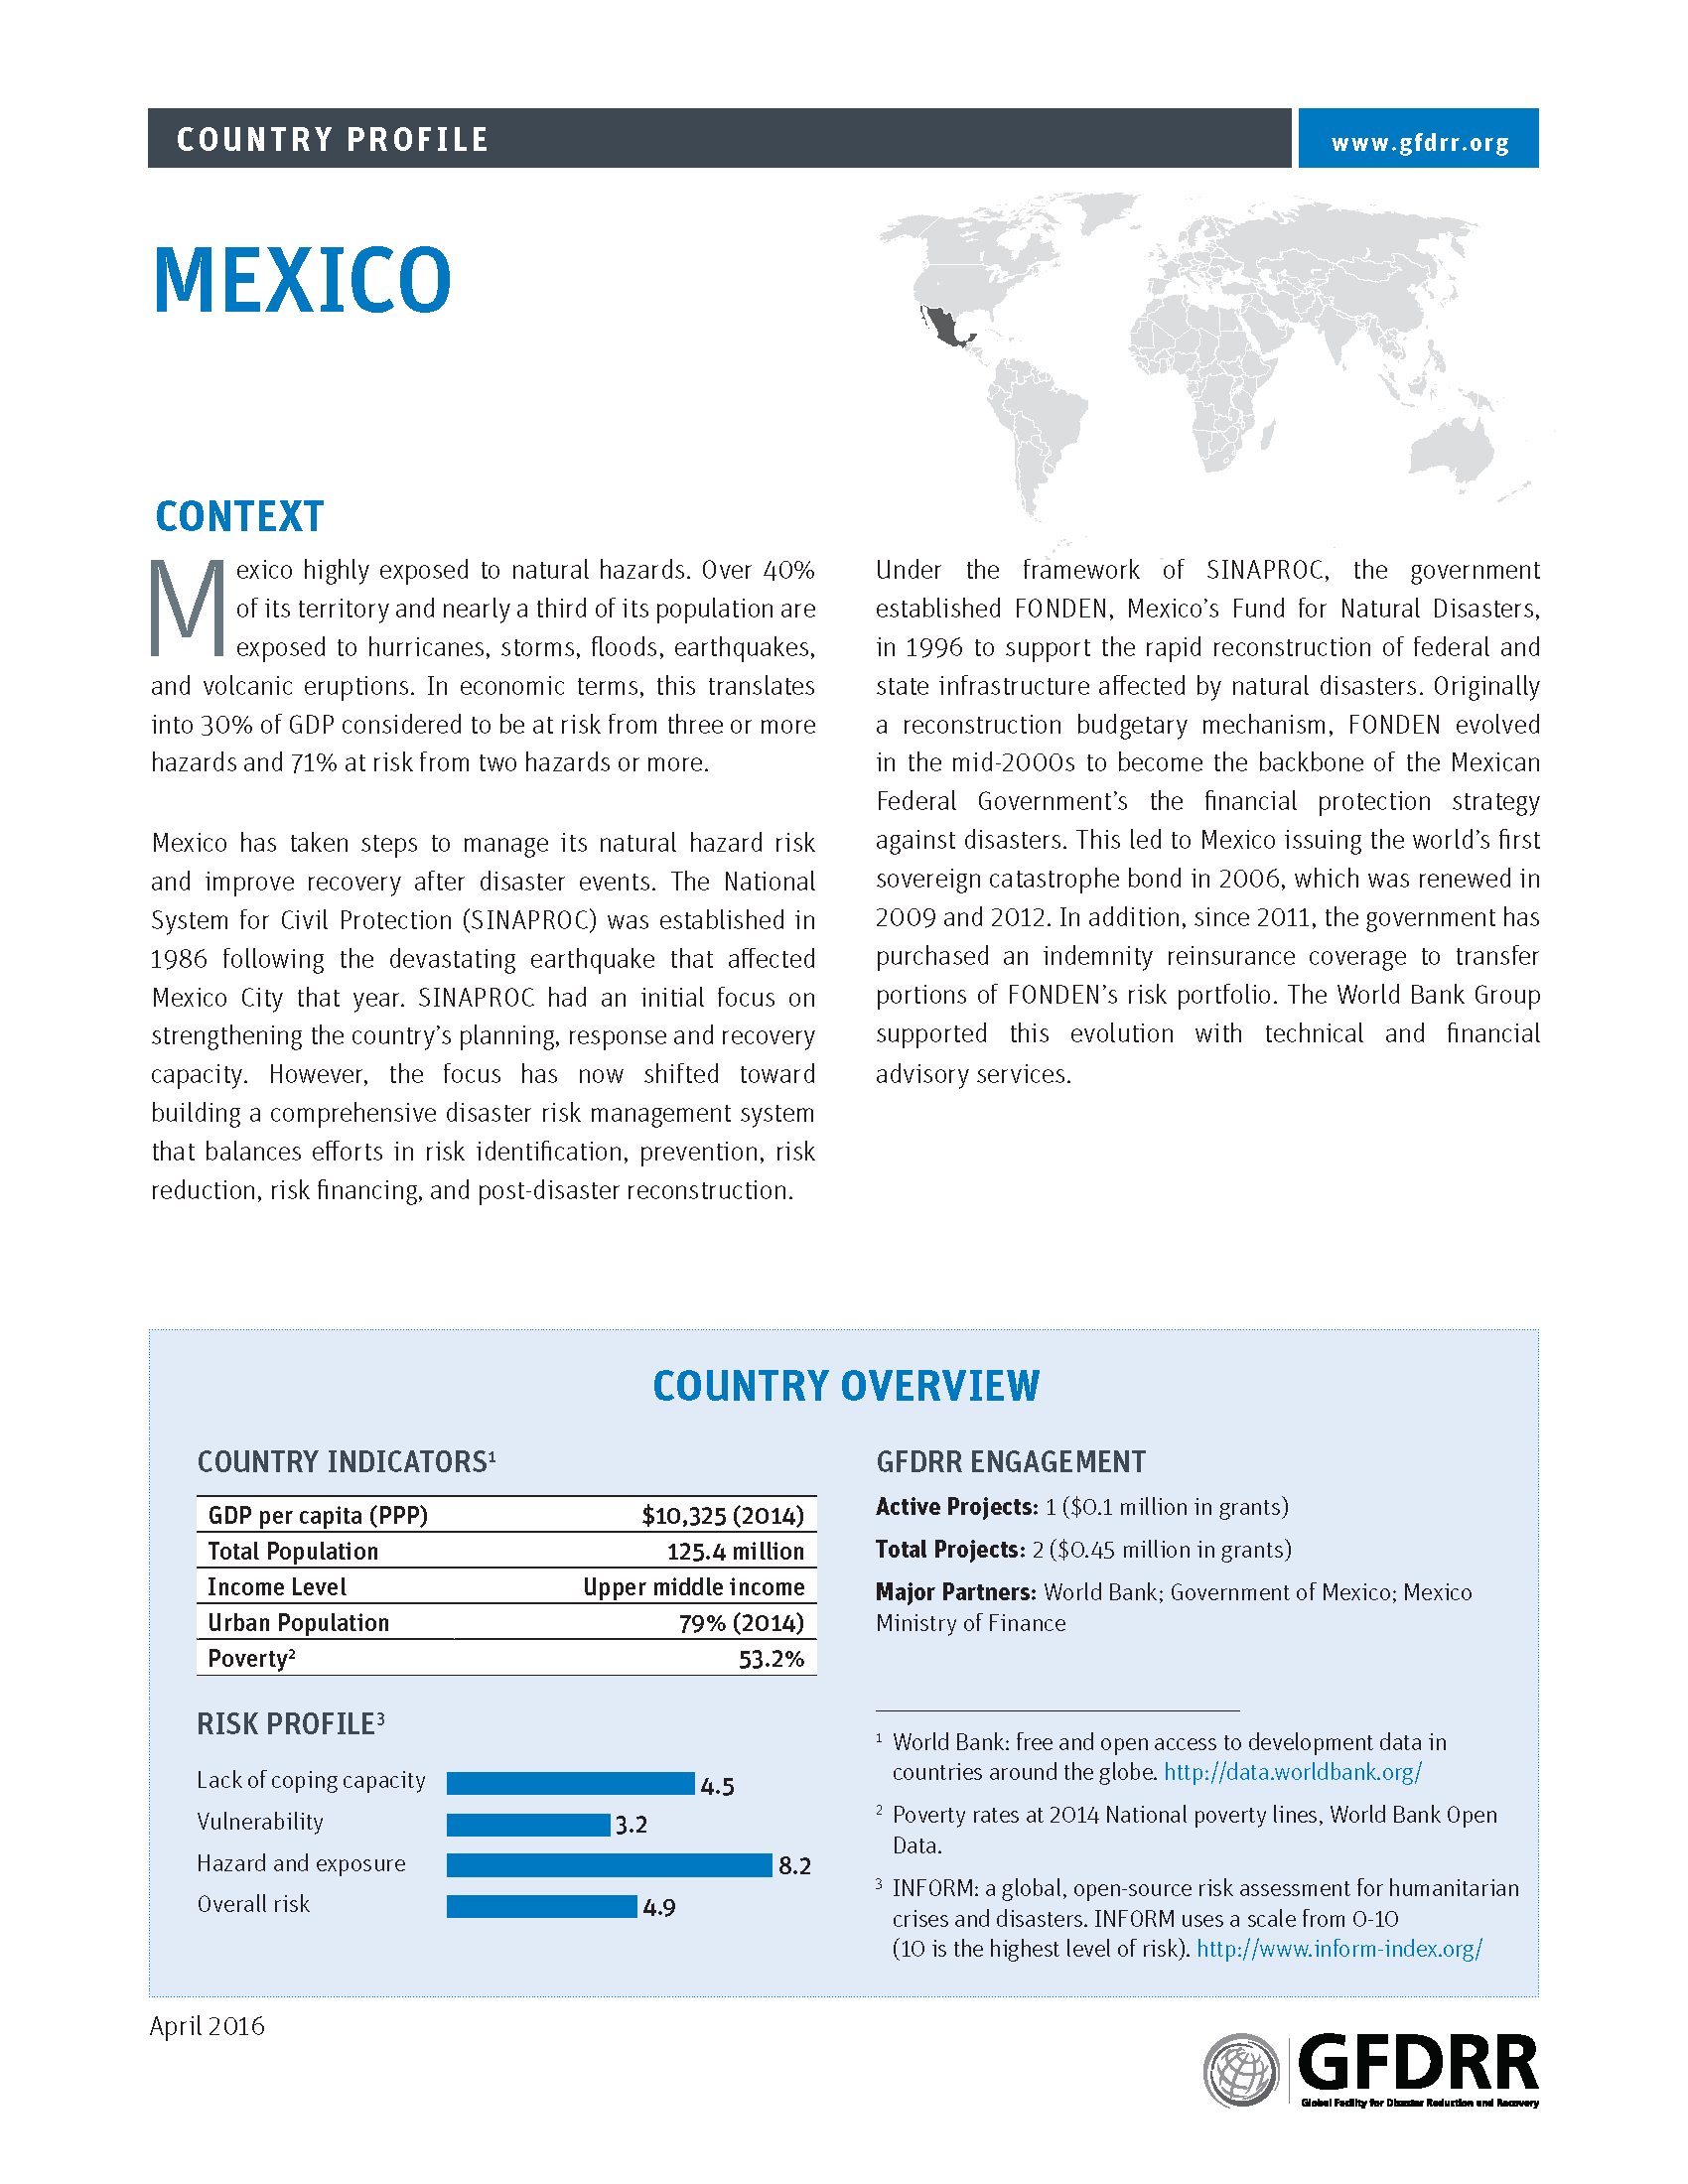 Country Profile: Mexico